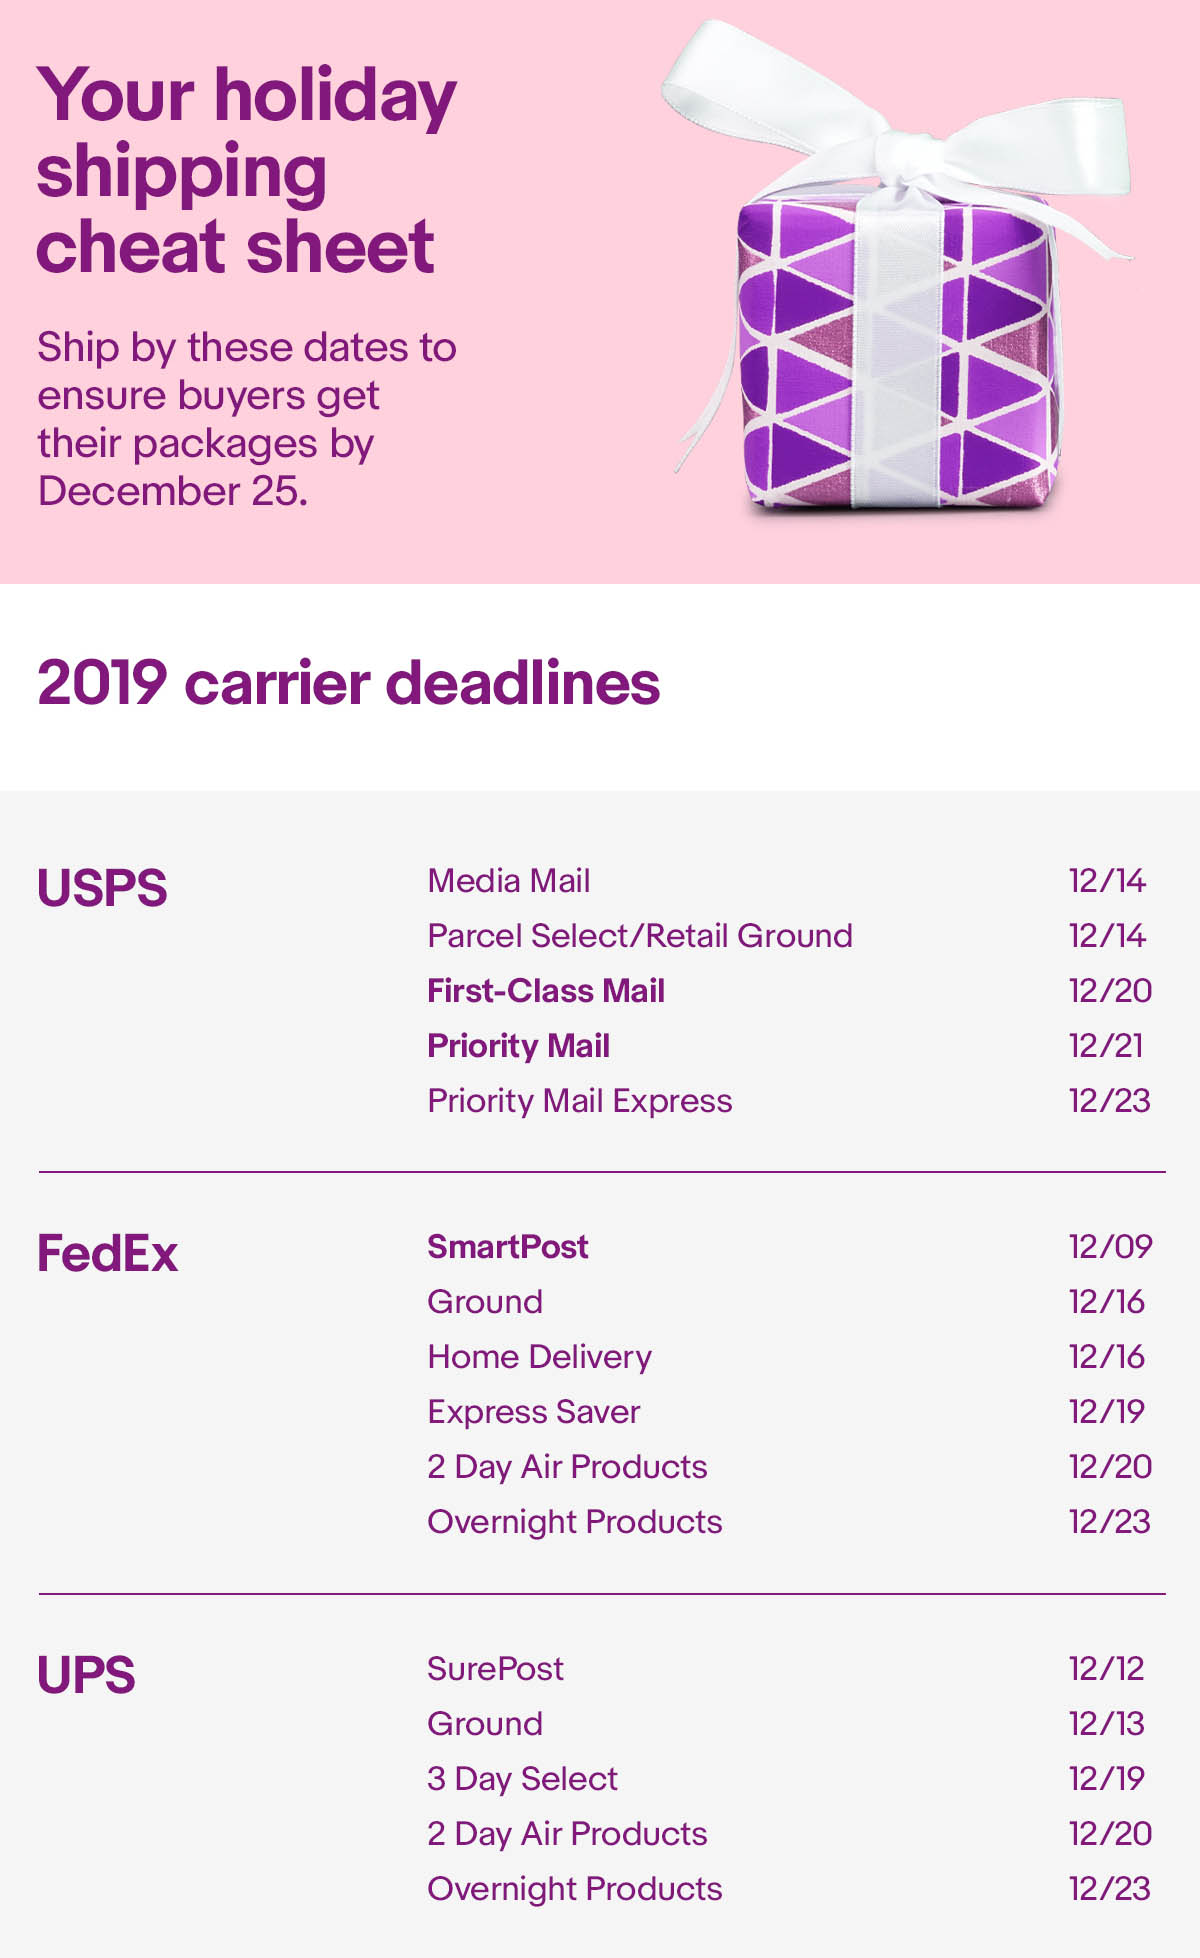 Your holiday shipping cheat sheet